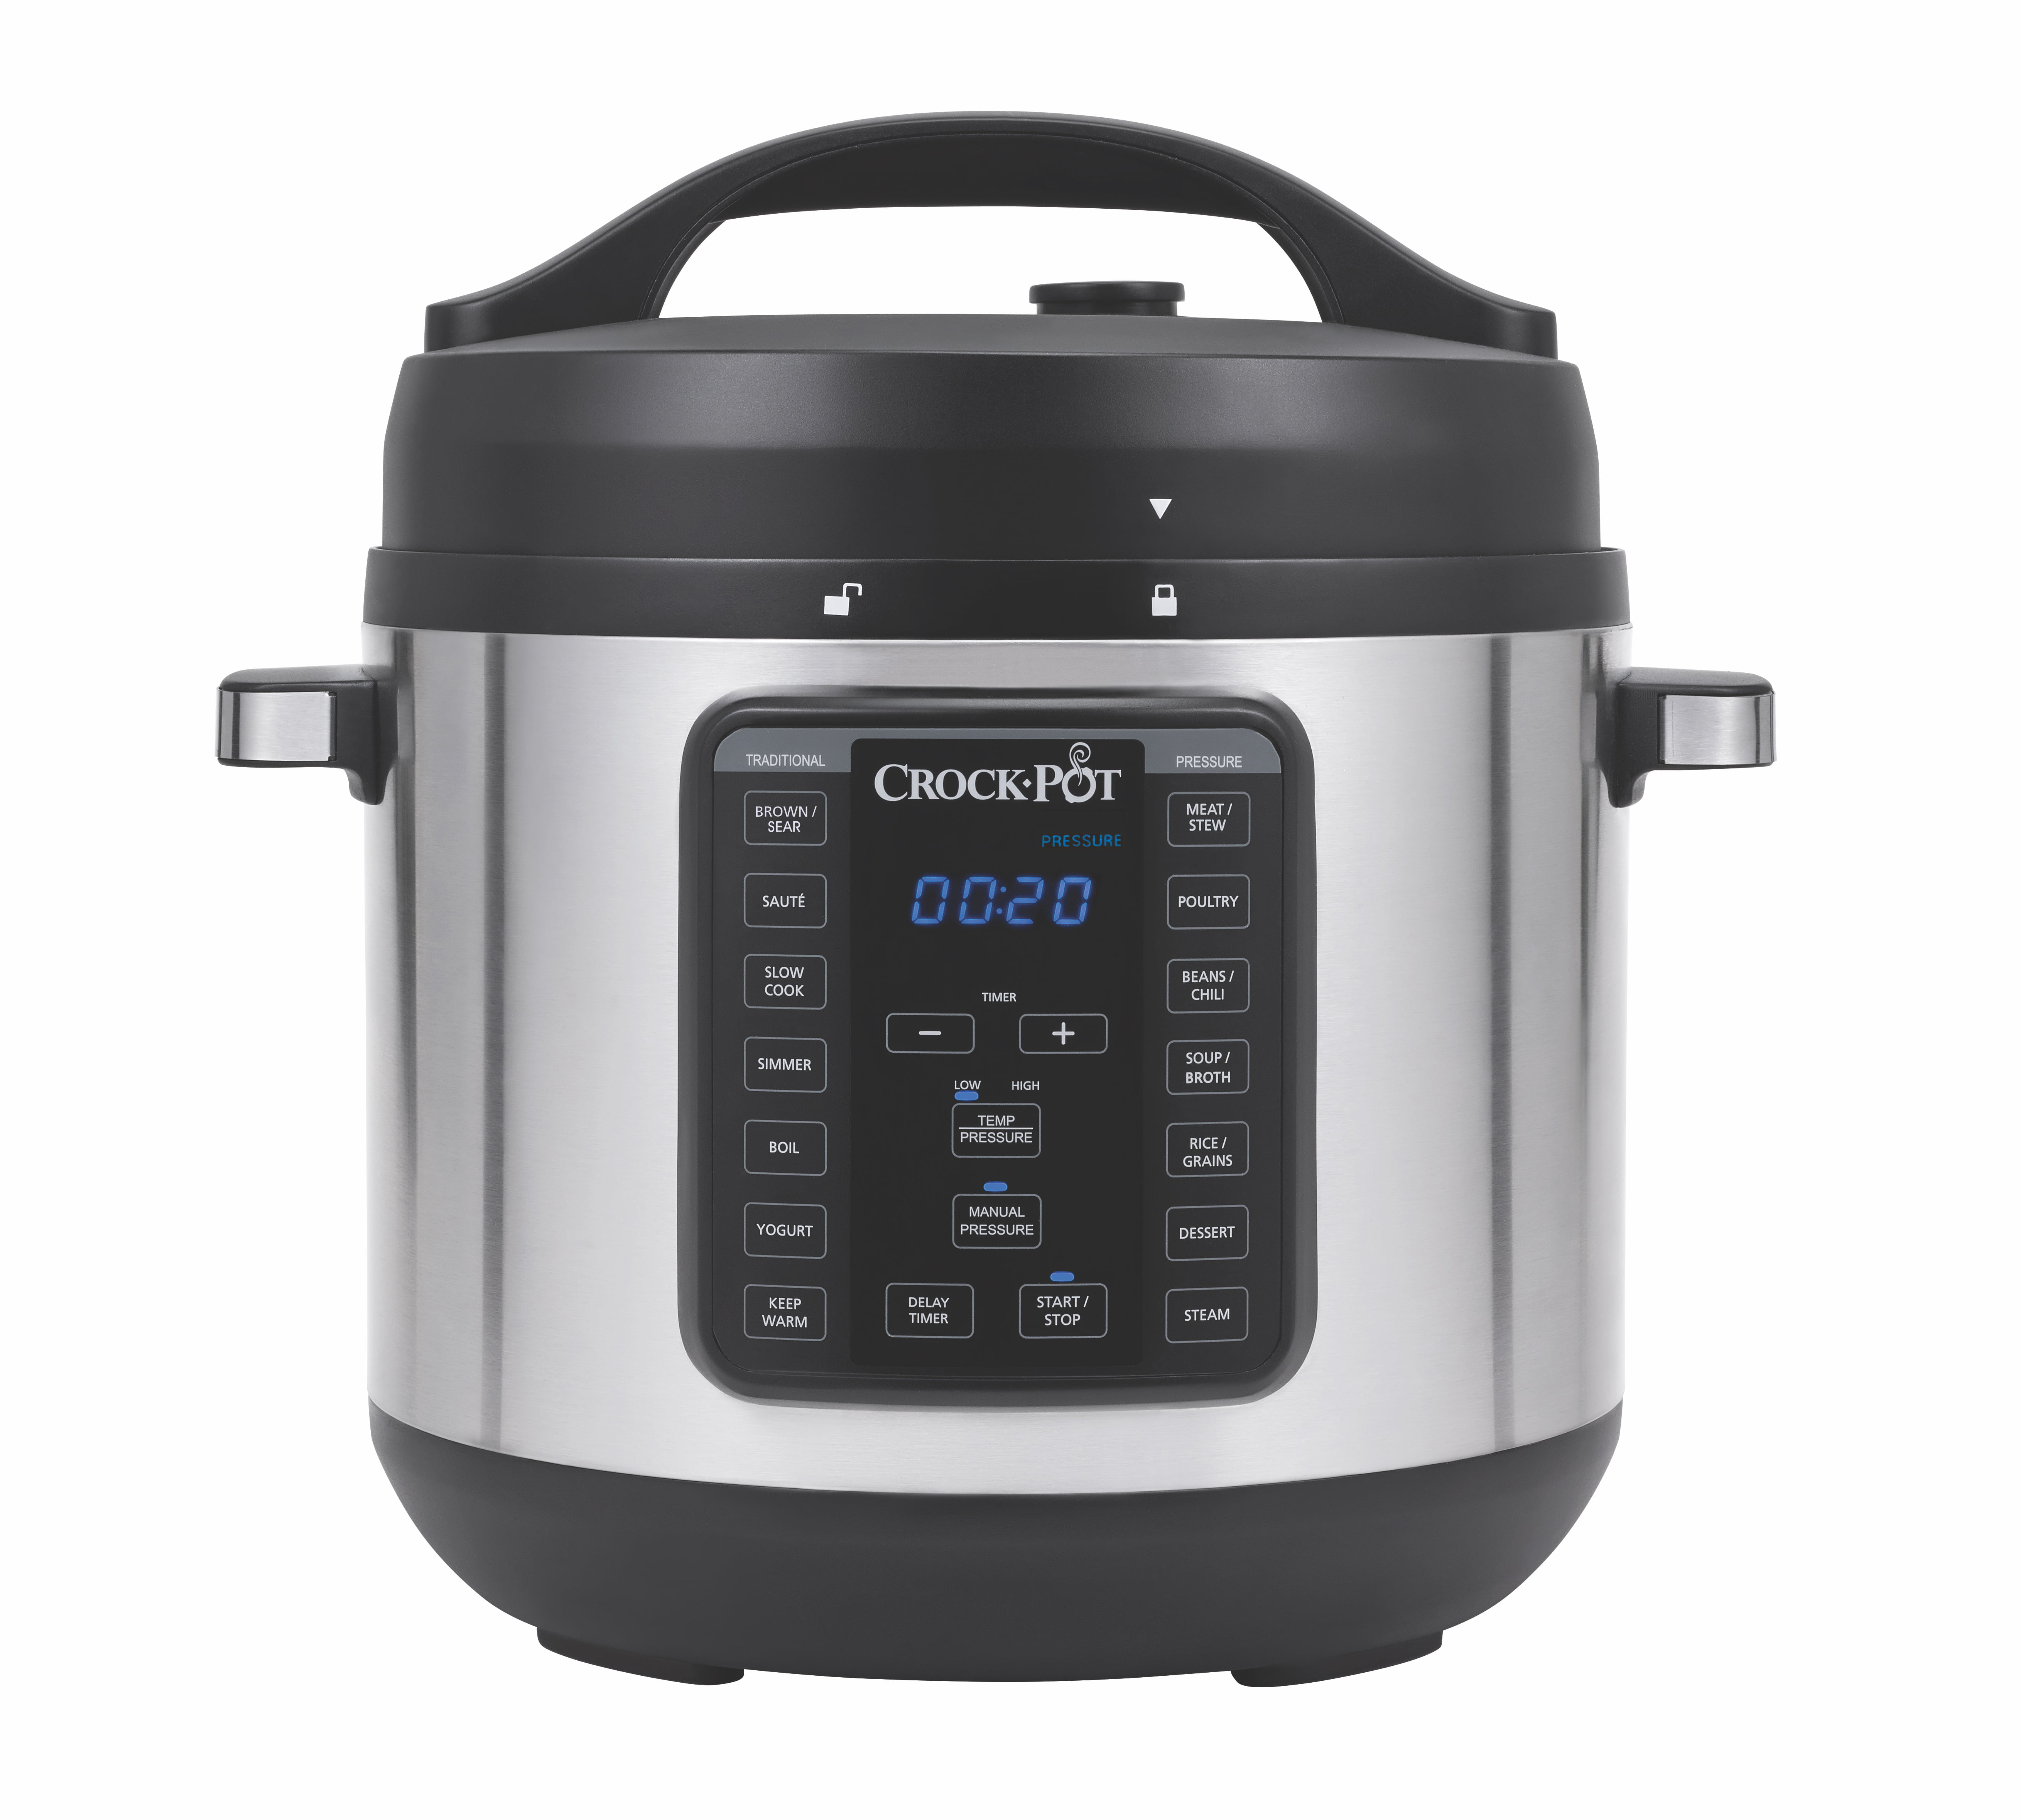 Crock Pot 8 Qt In 1 Multi Use Express Programmable Slow Cooker Pressure Saut And Steamer Stainless Steel